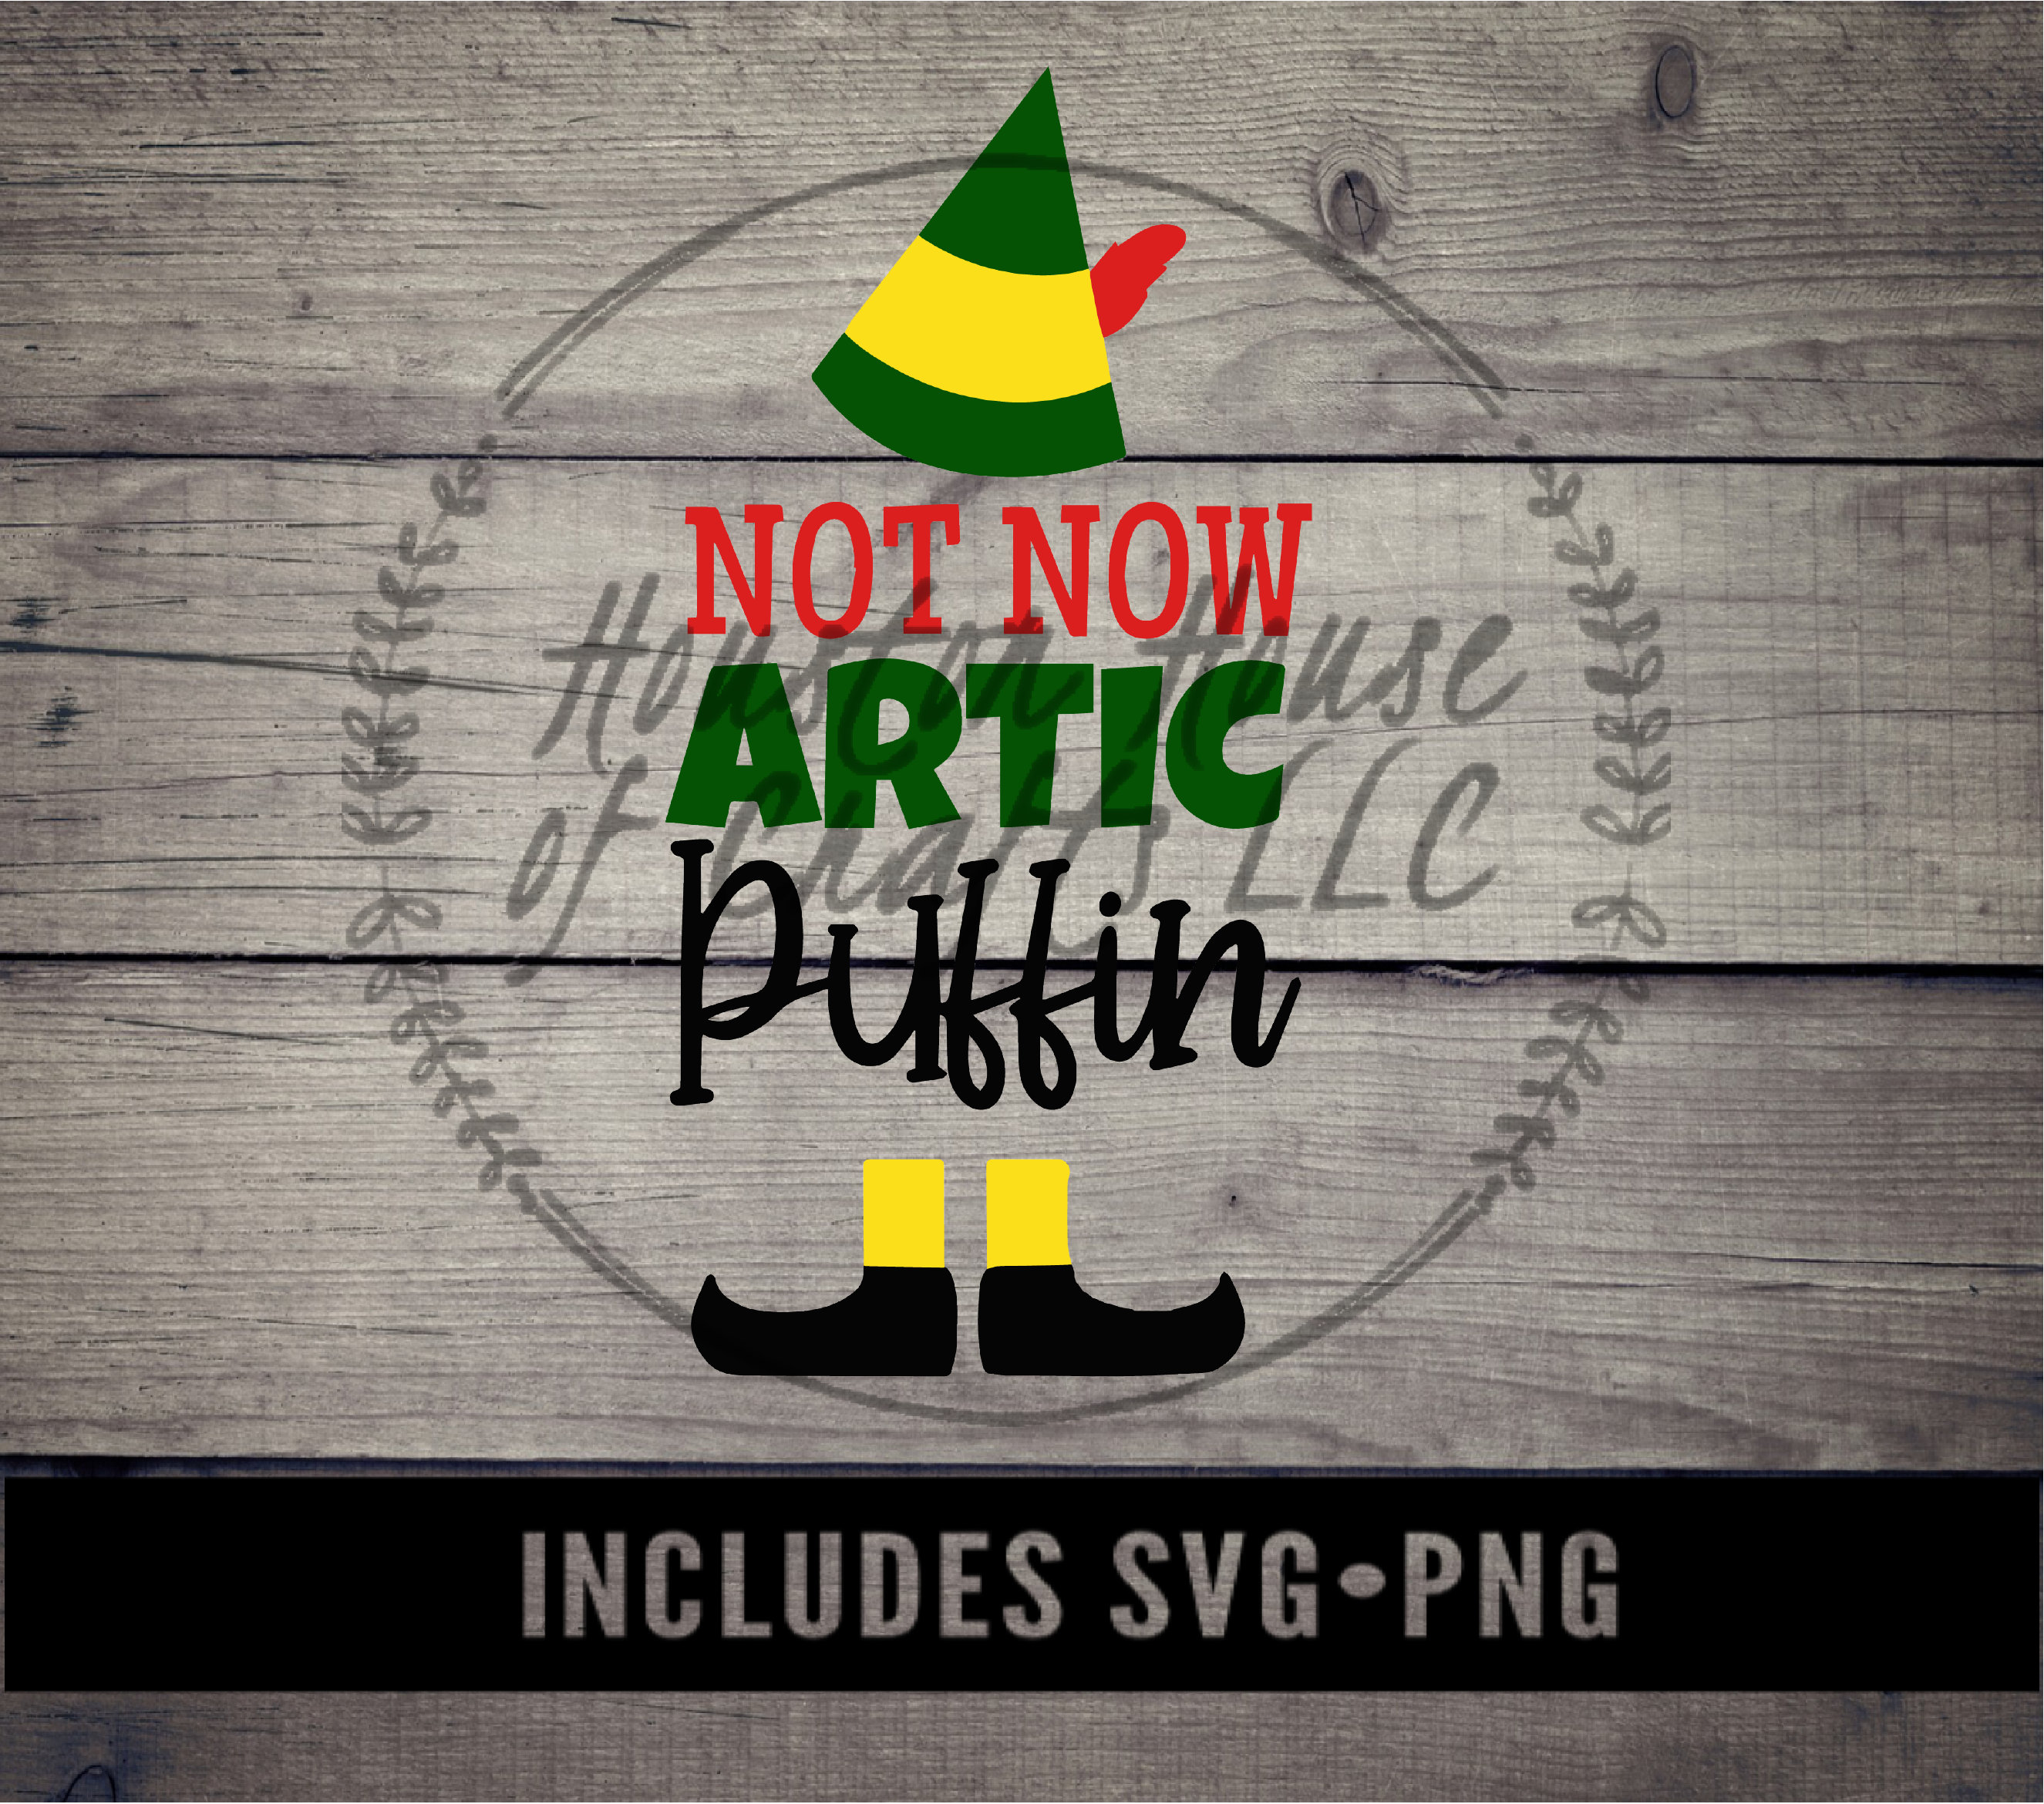 Not Now Arctic Puffin Svg Velf Movie Svg Christmas Png Christmas Svg Elf Movie Svg Arctic Puffin Png Arctic Puffin Quote